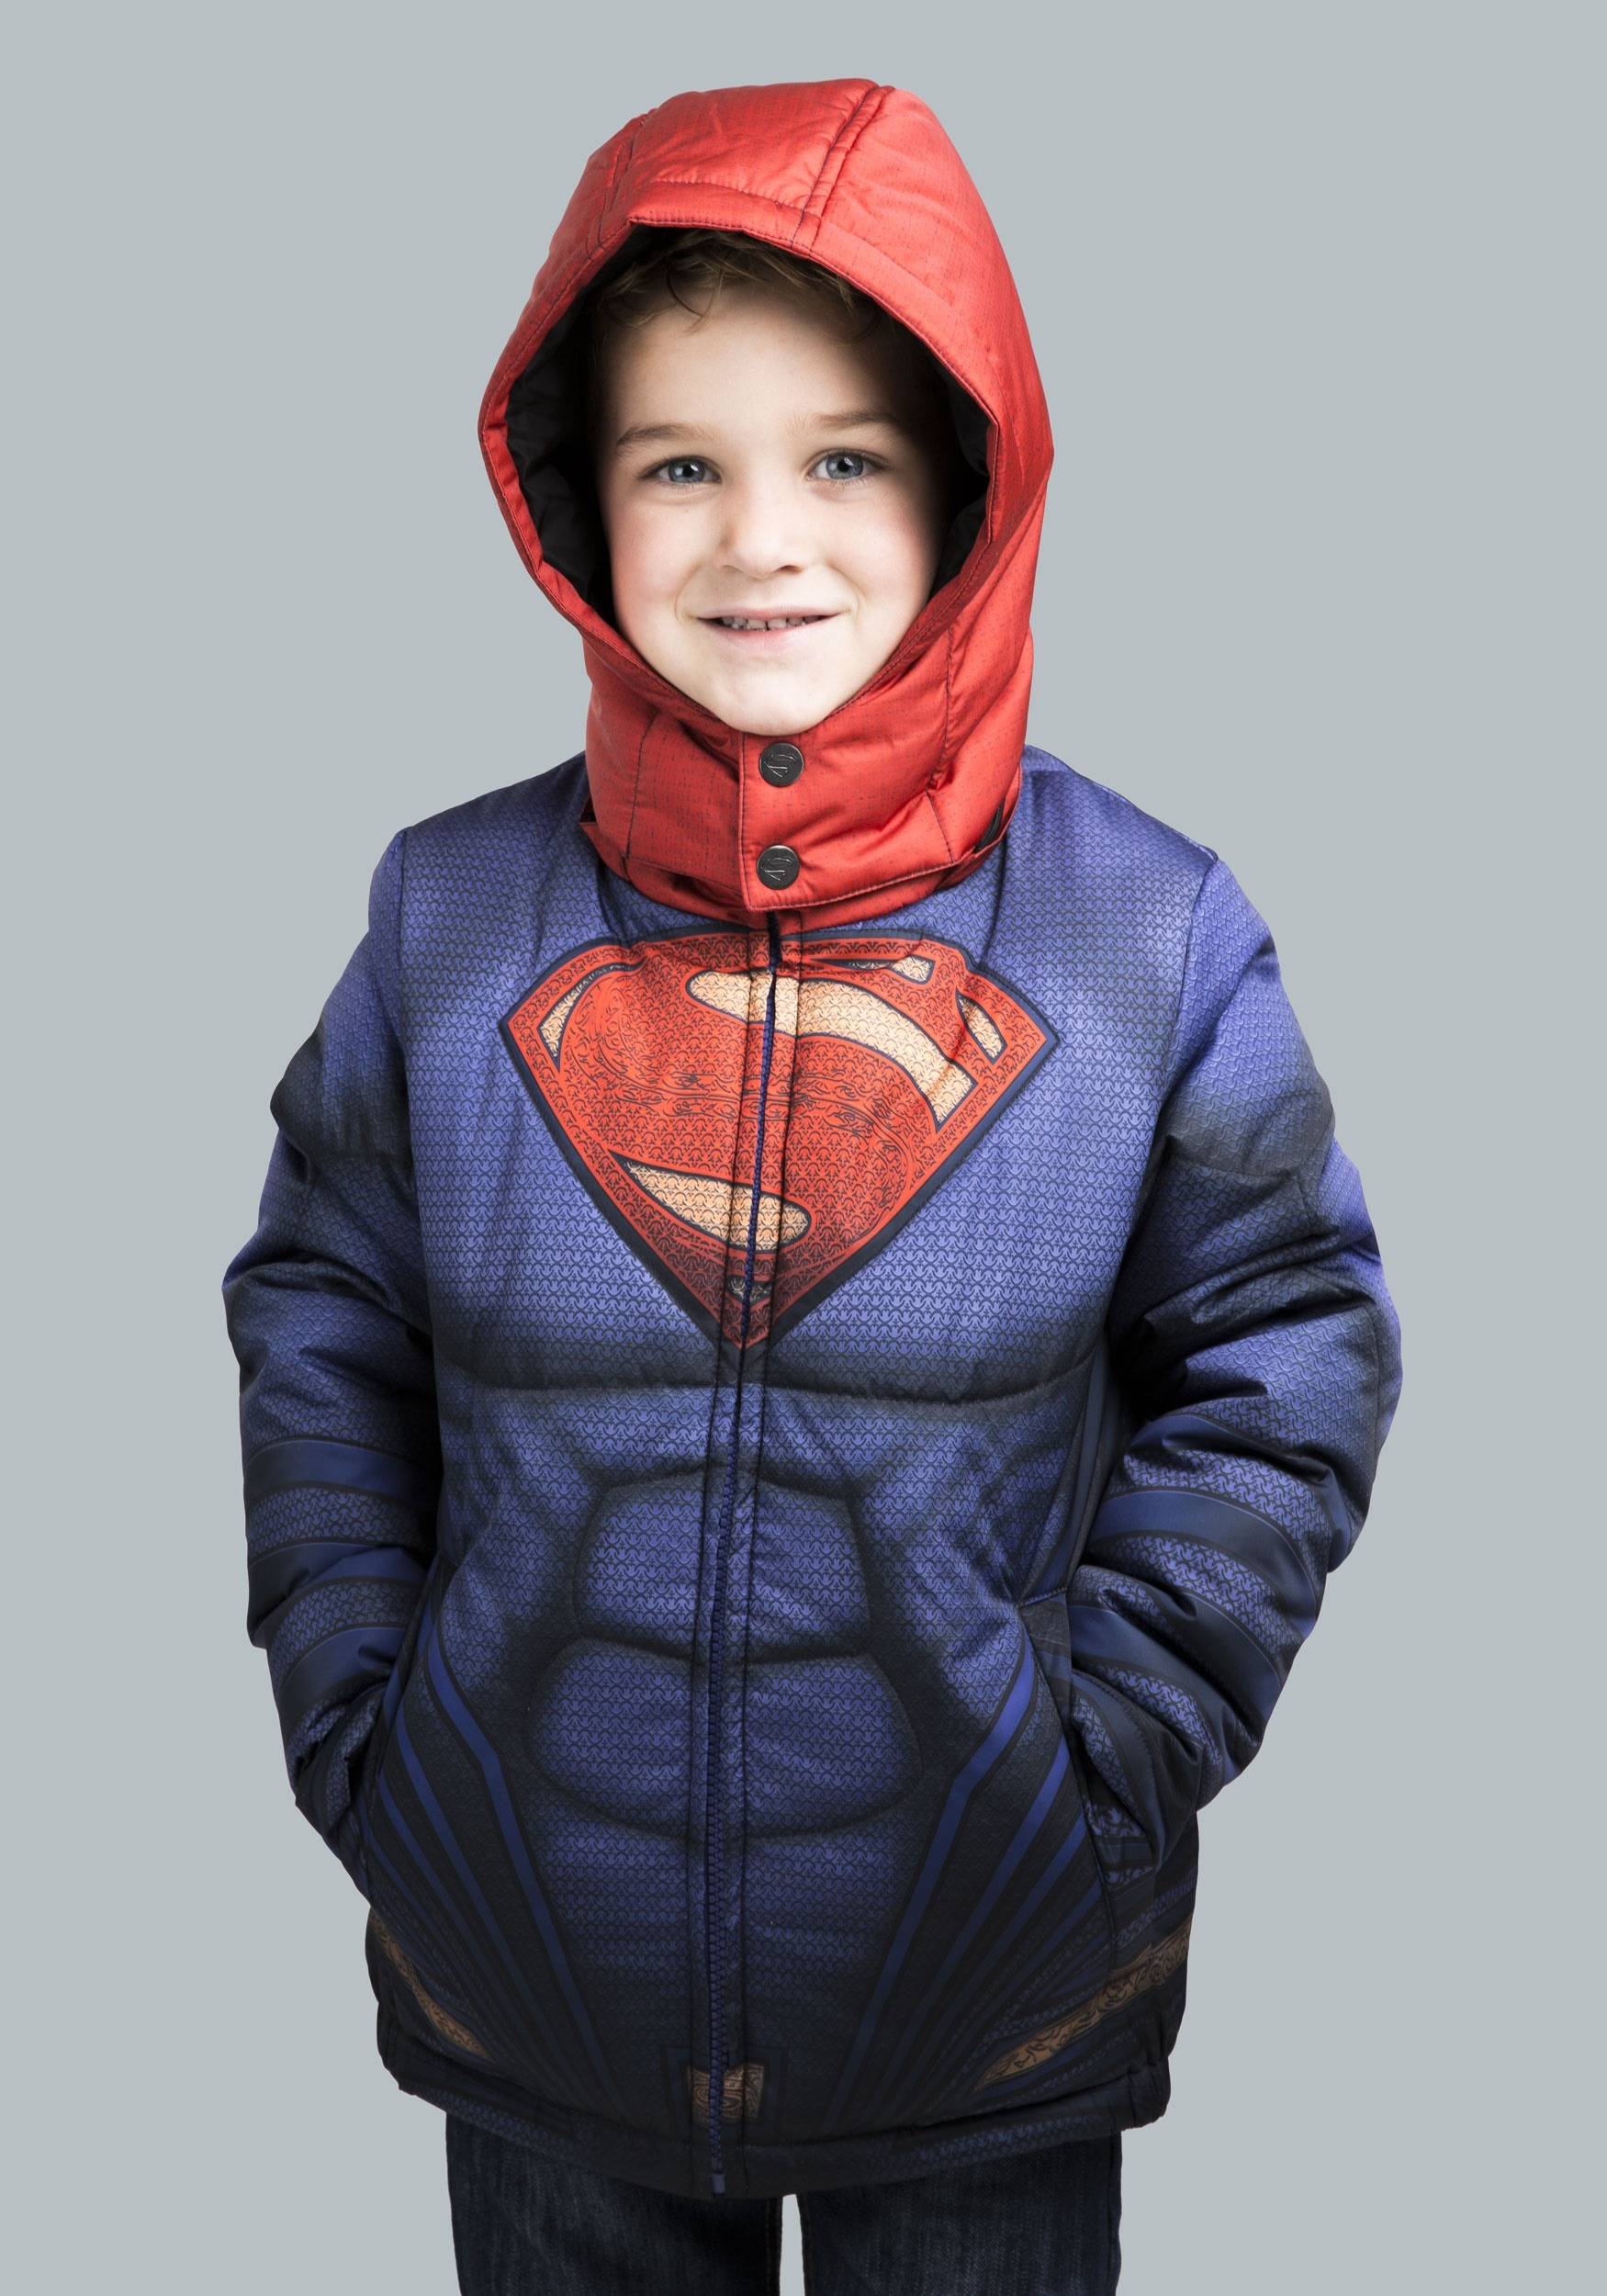 With printed details like the Superman shield on the chest, and stitched-in muscles, this child's puffer jacket spares nothing to make your kid feel like the hero he was destined to be. The coat comes with specially designed debossed buttons with the Superman logo on them for a subtle touch, while the hood has a vibrant red color that resembles 5/5(1).